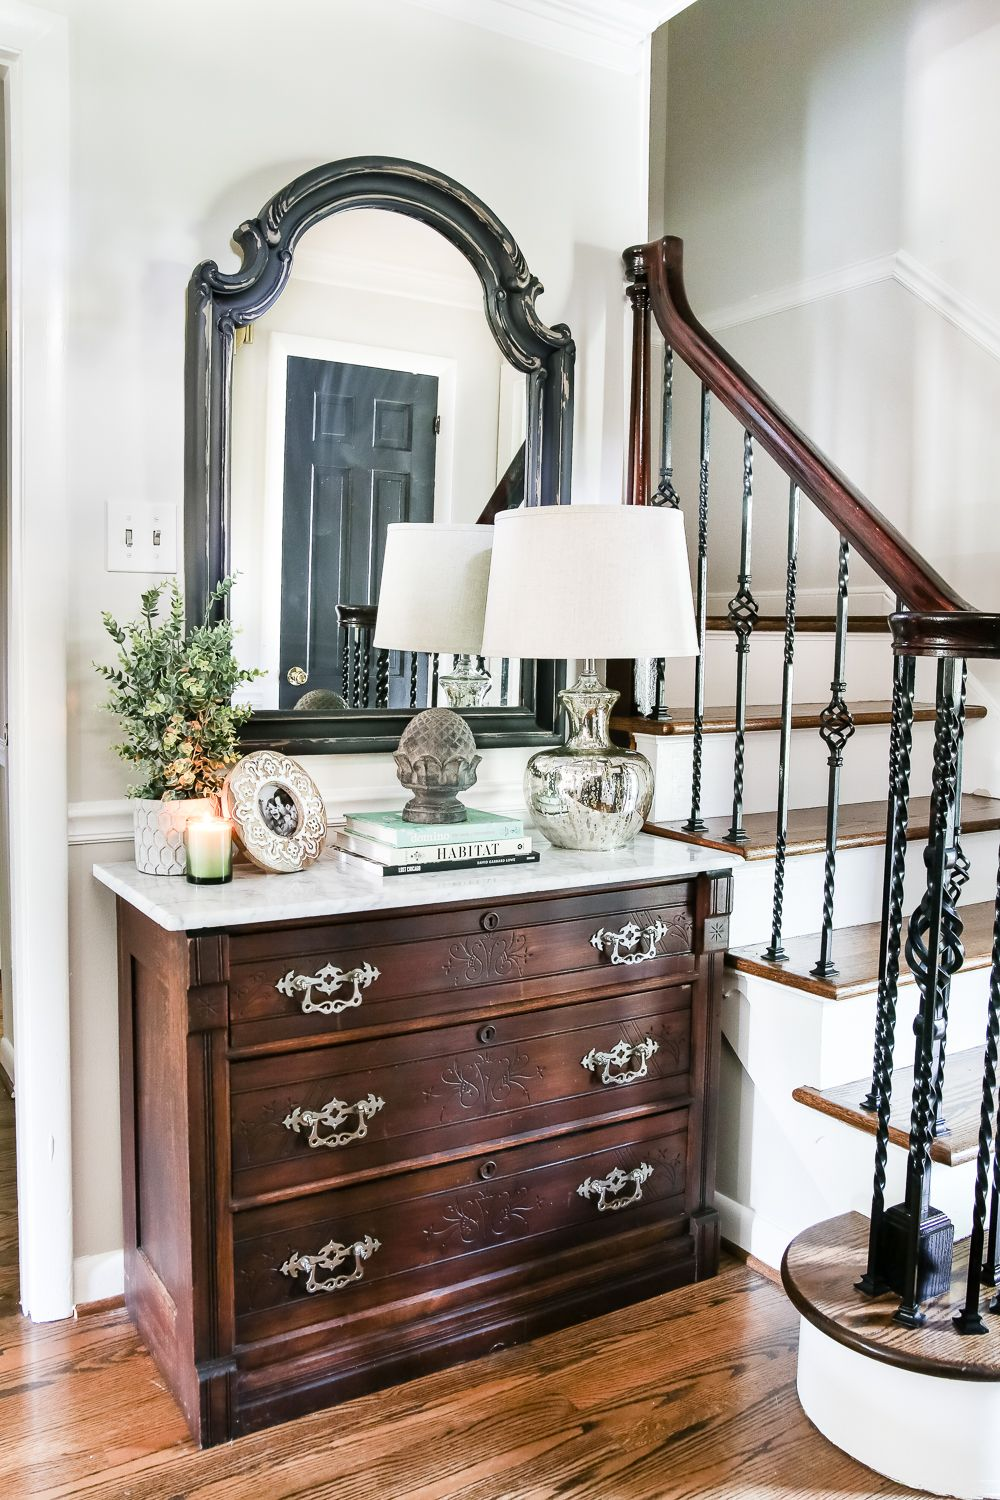 Victorian Foyer Names : How to remove stains from marble foyer chest makeover